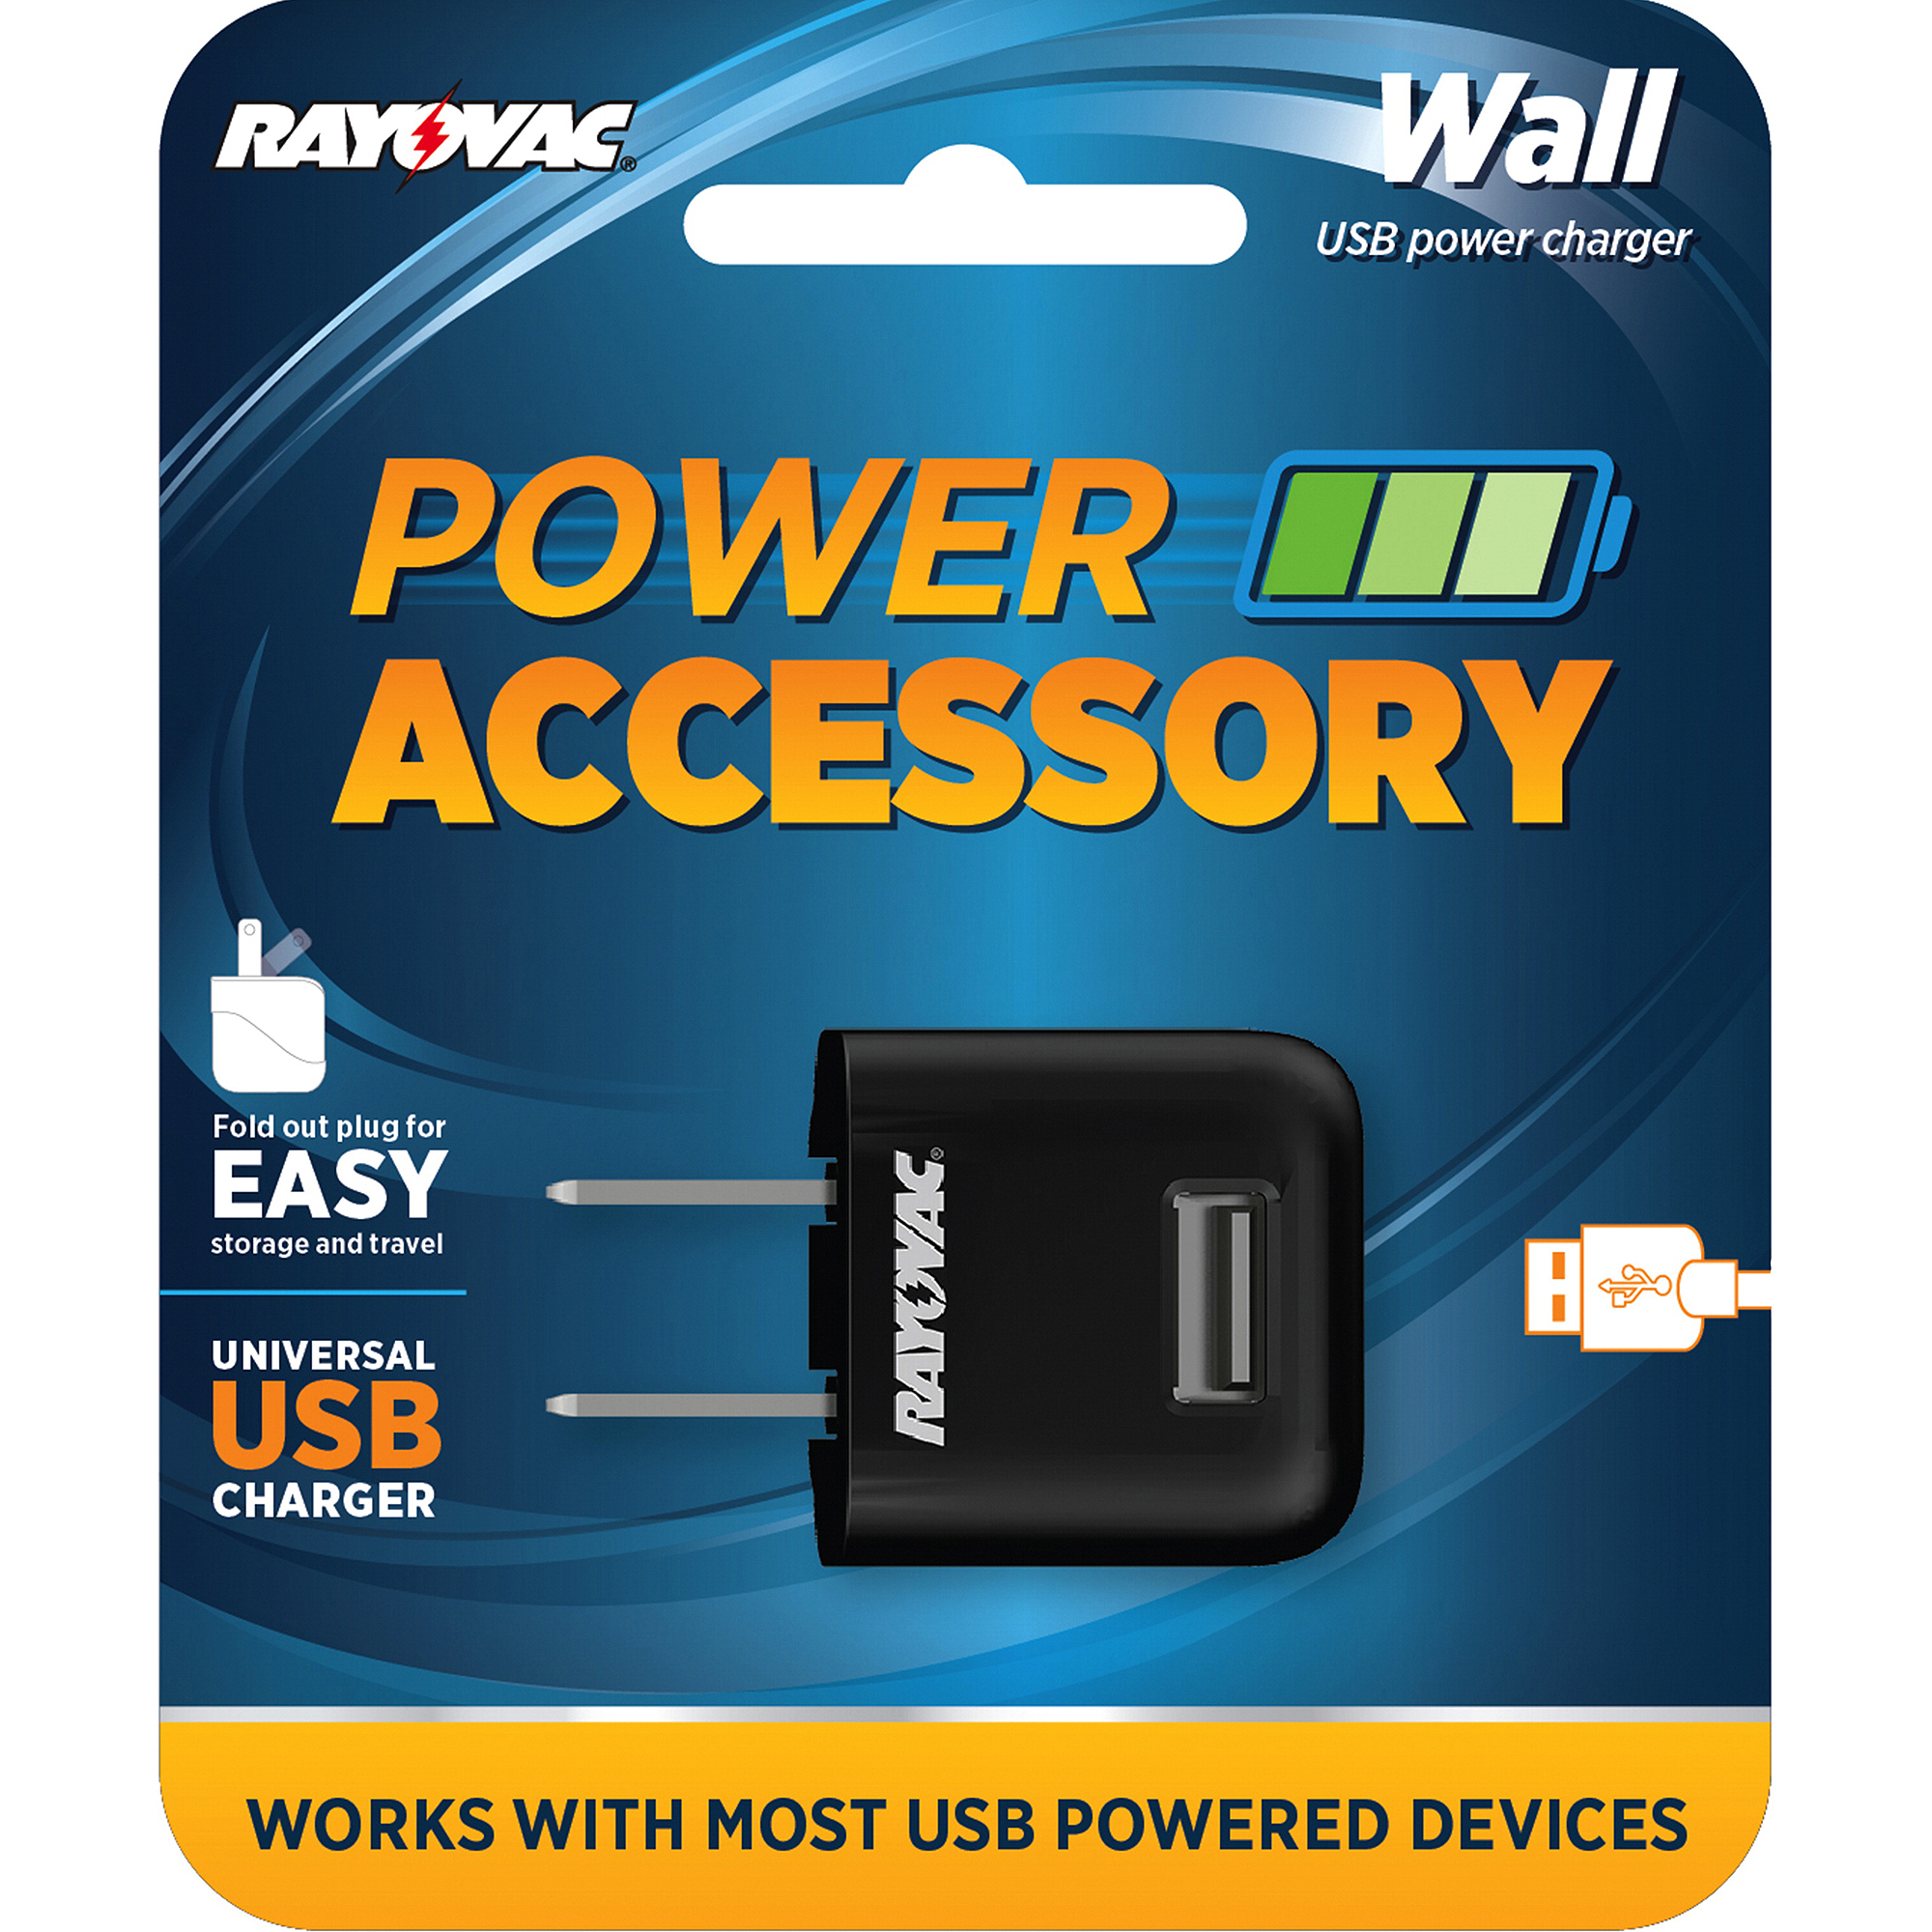 Rayovac Portable USB Wall Charger